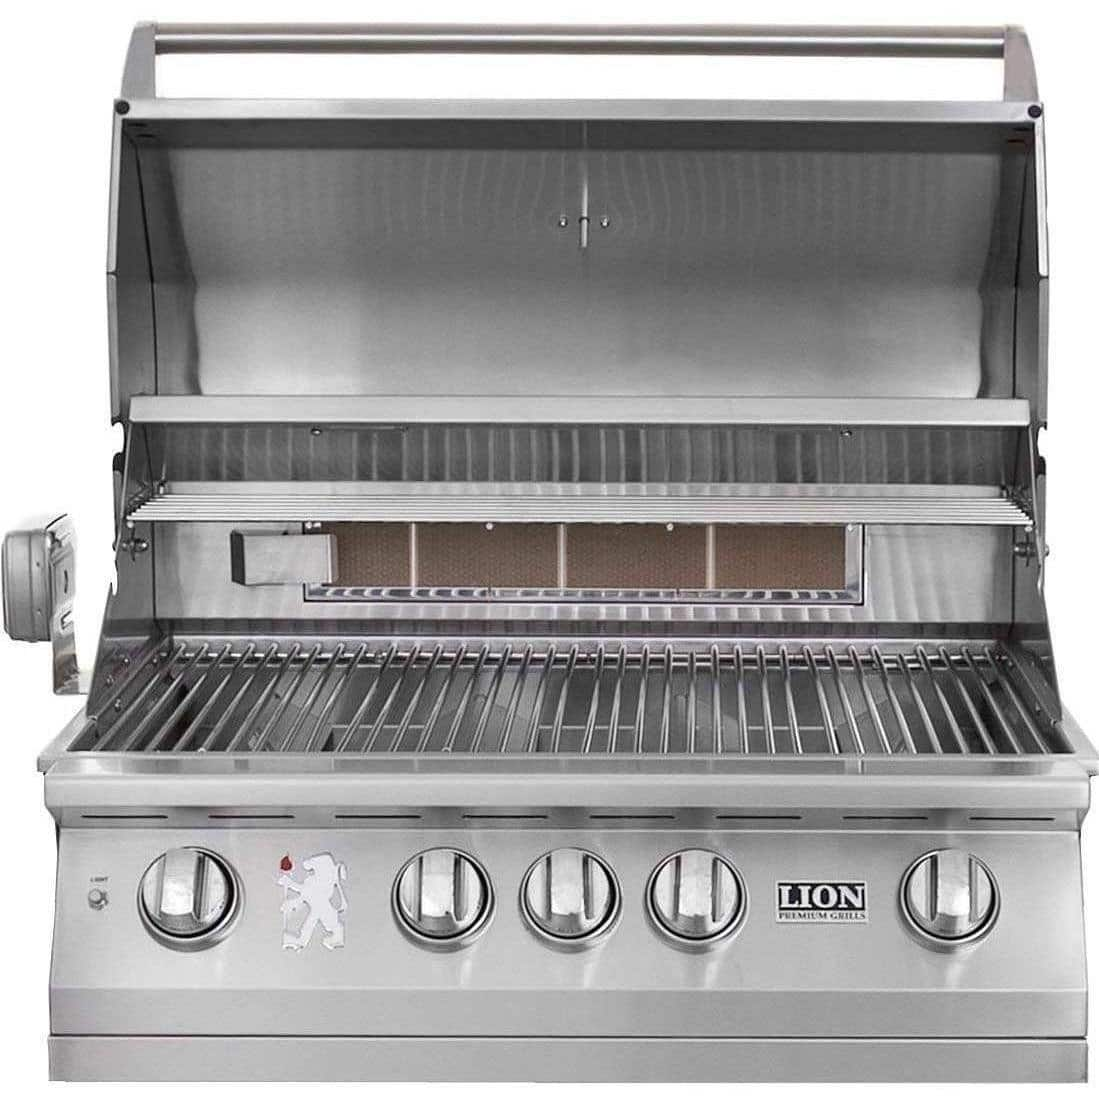 The Grill Is Made From 304 Stainless Steel So You Know It Will Last 4 Burners Emit 60 000 Btus For All Heating Need And